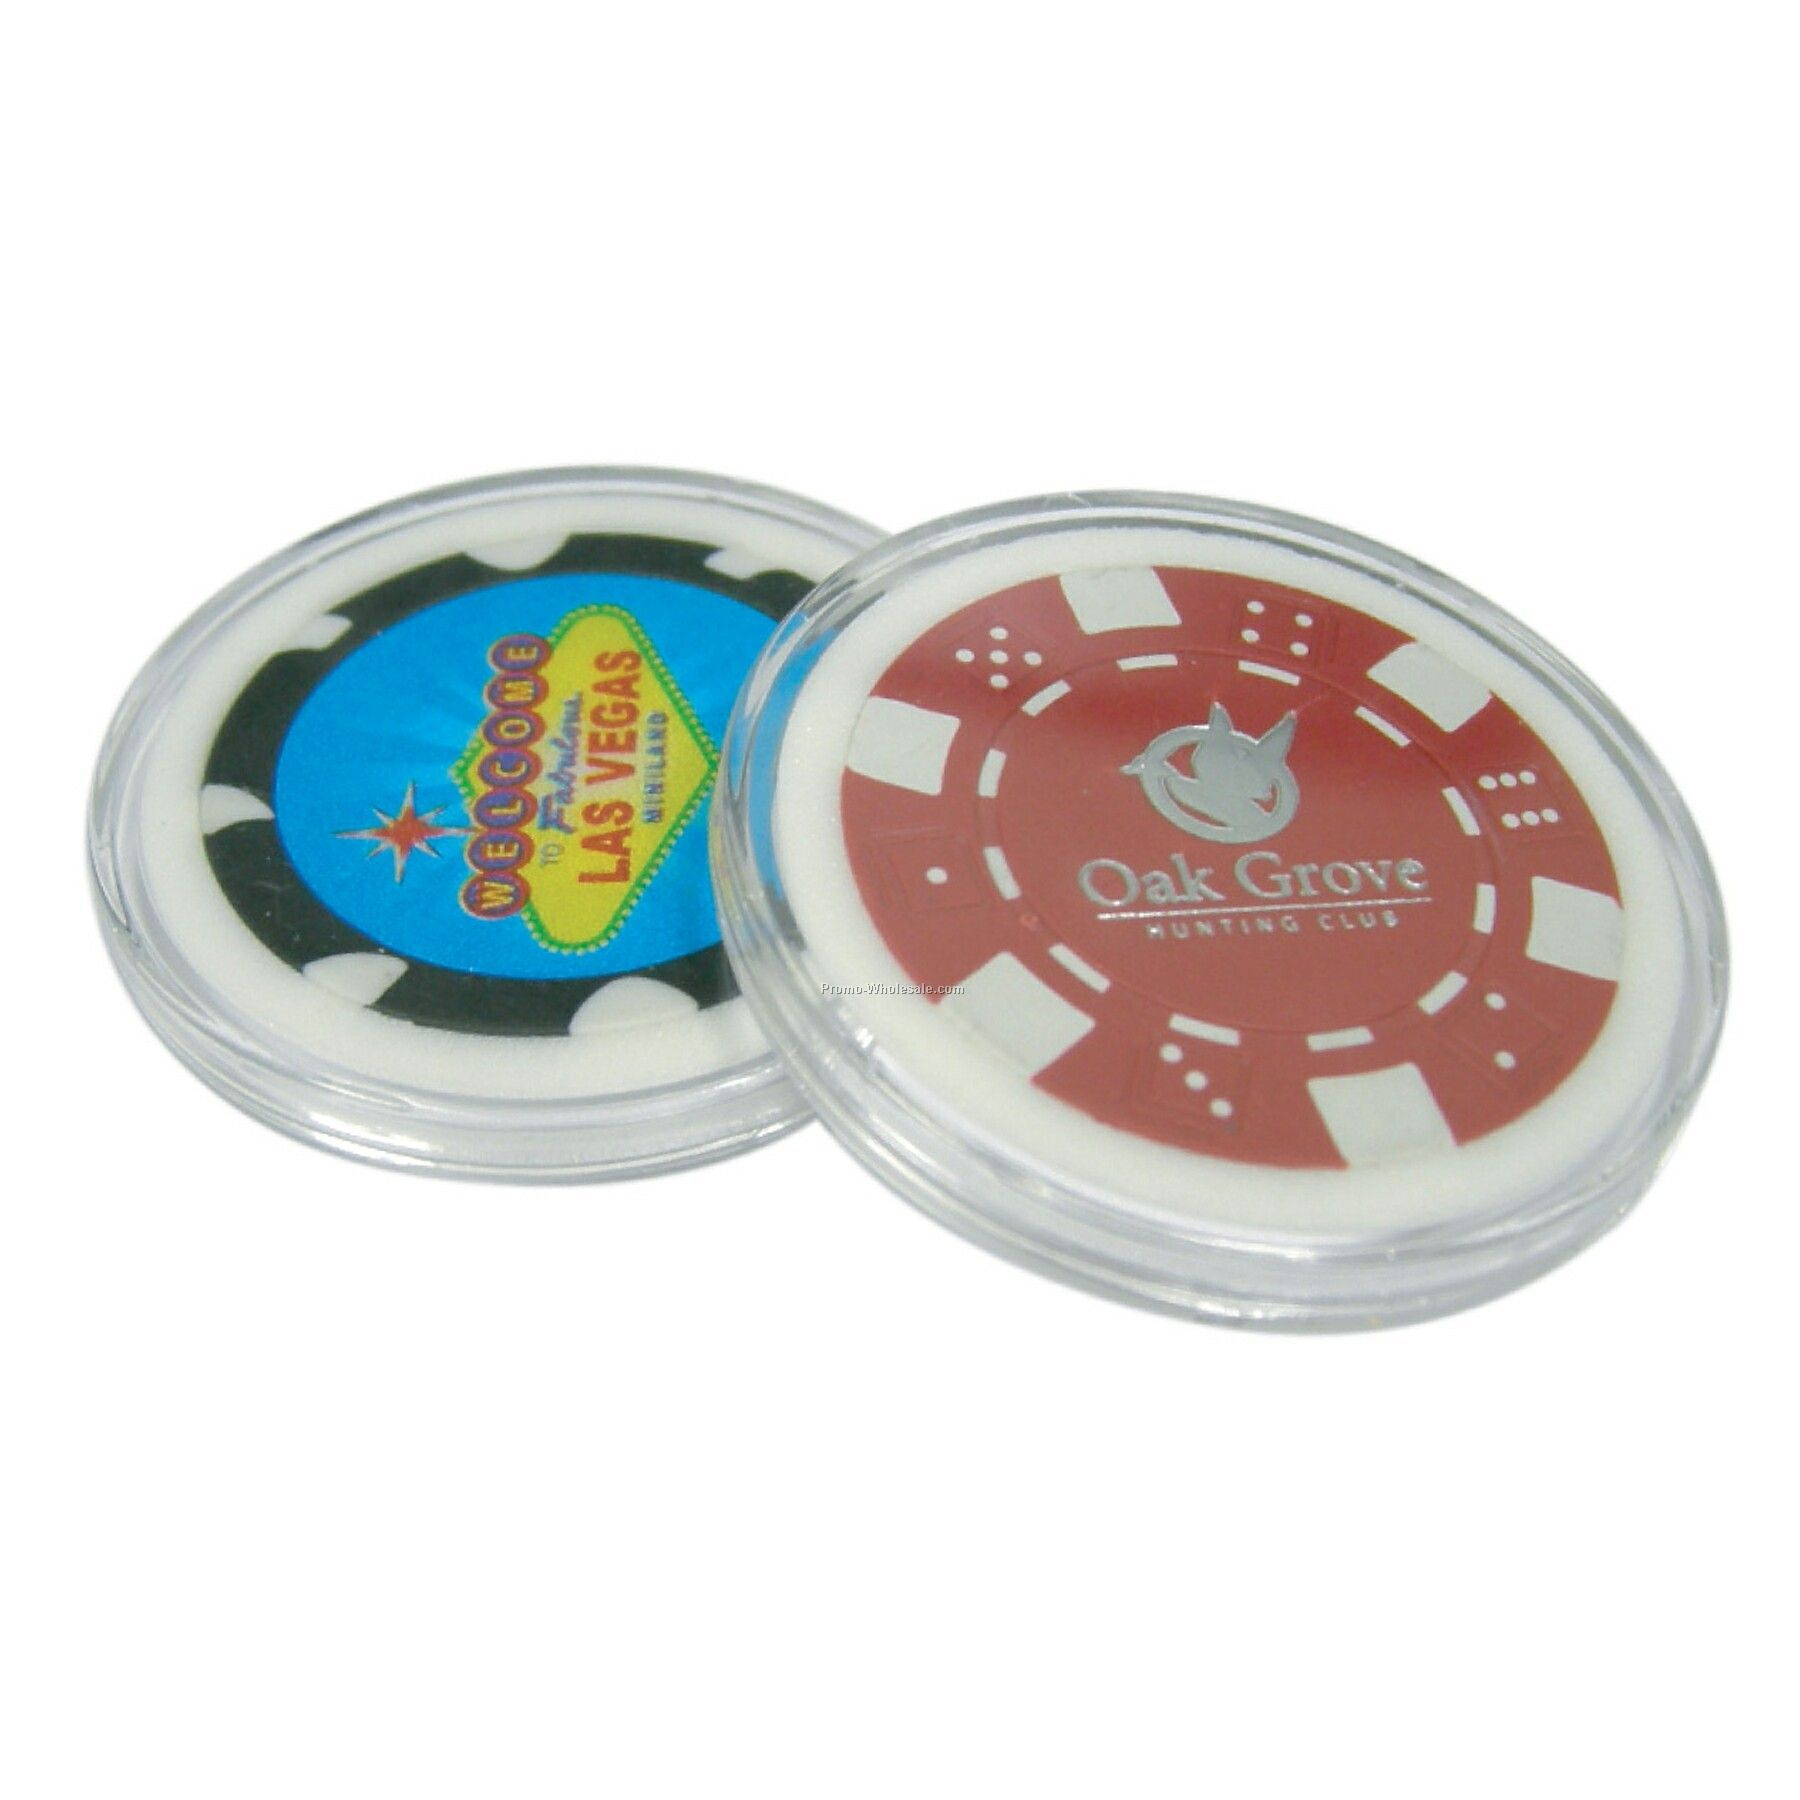 Acrylic poker chips robert de niro casino izle